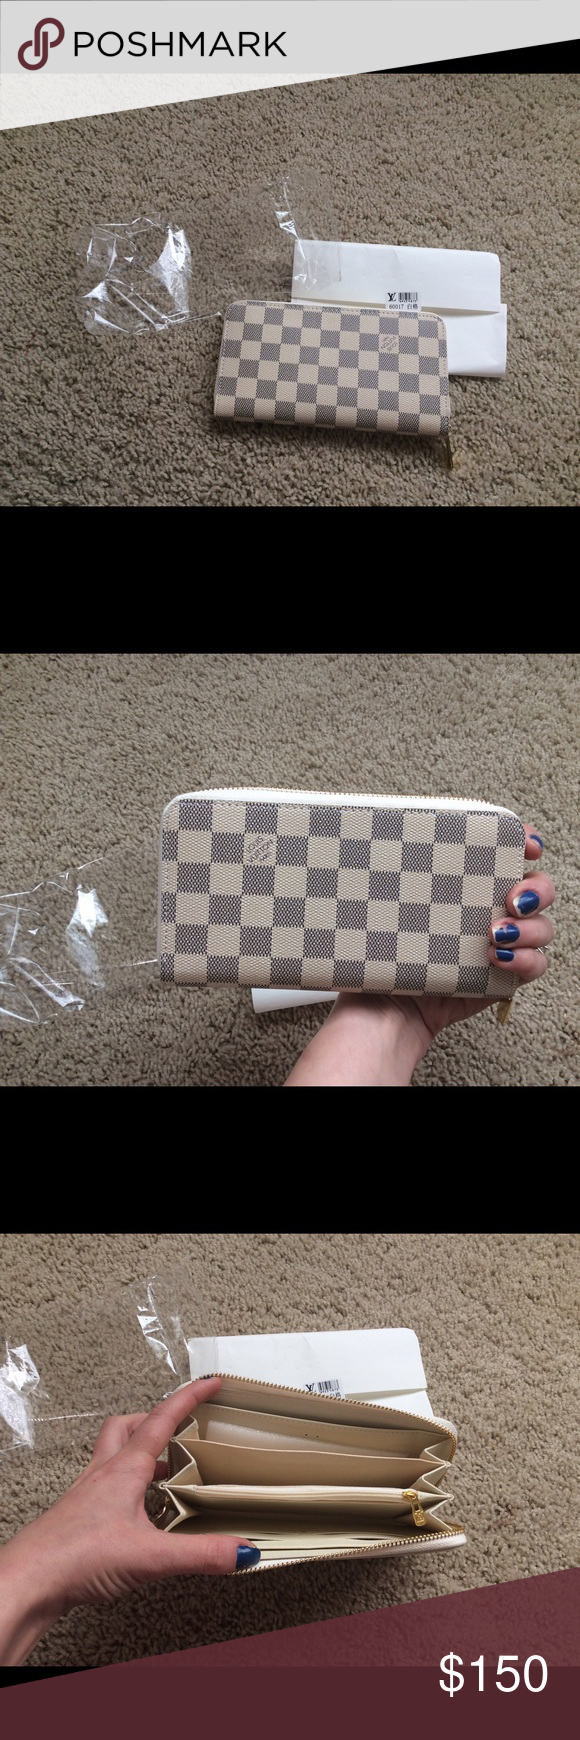 NWT Louis zippy wallet White checkered & light blue print Bags Wallets